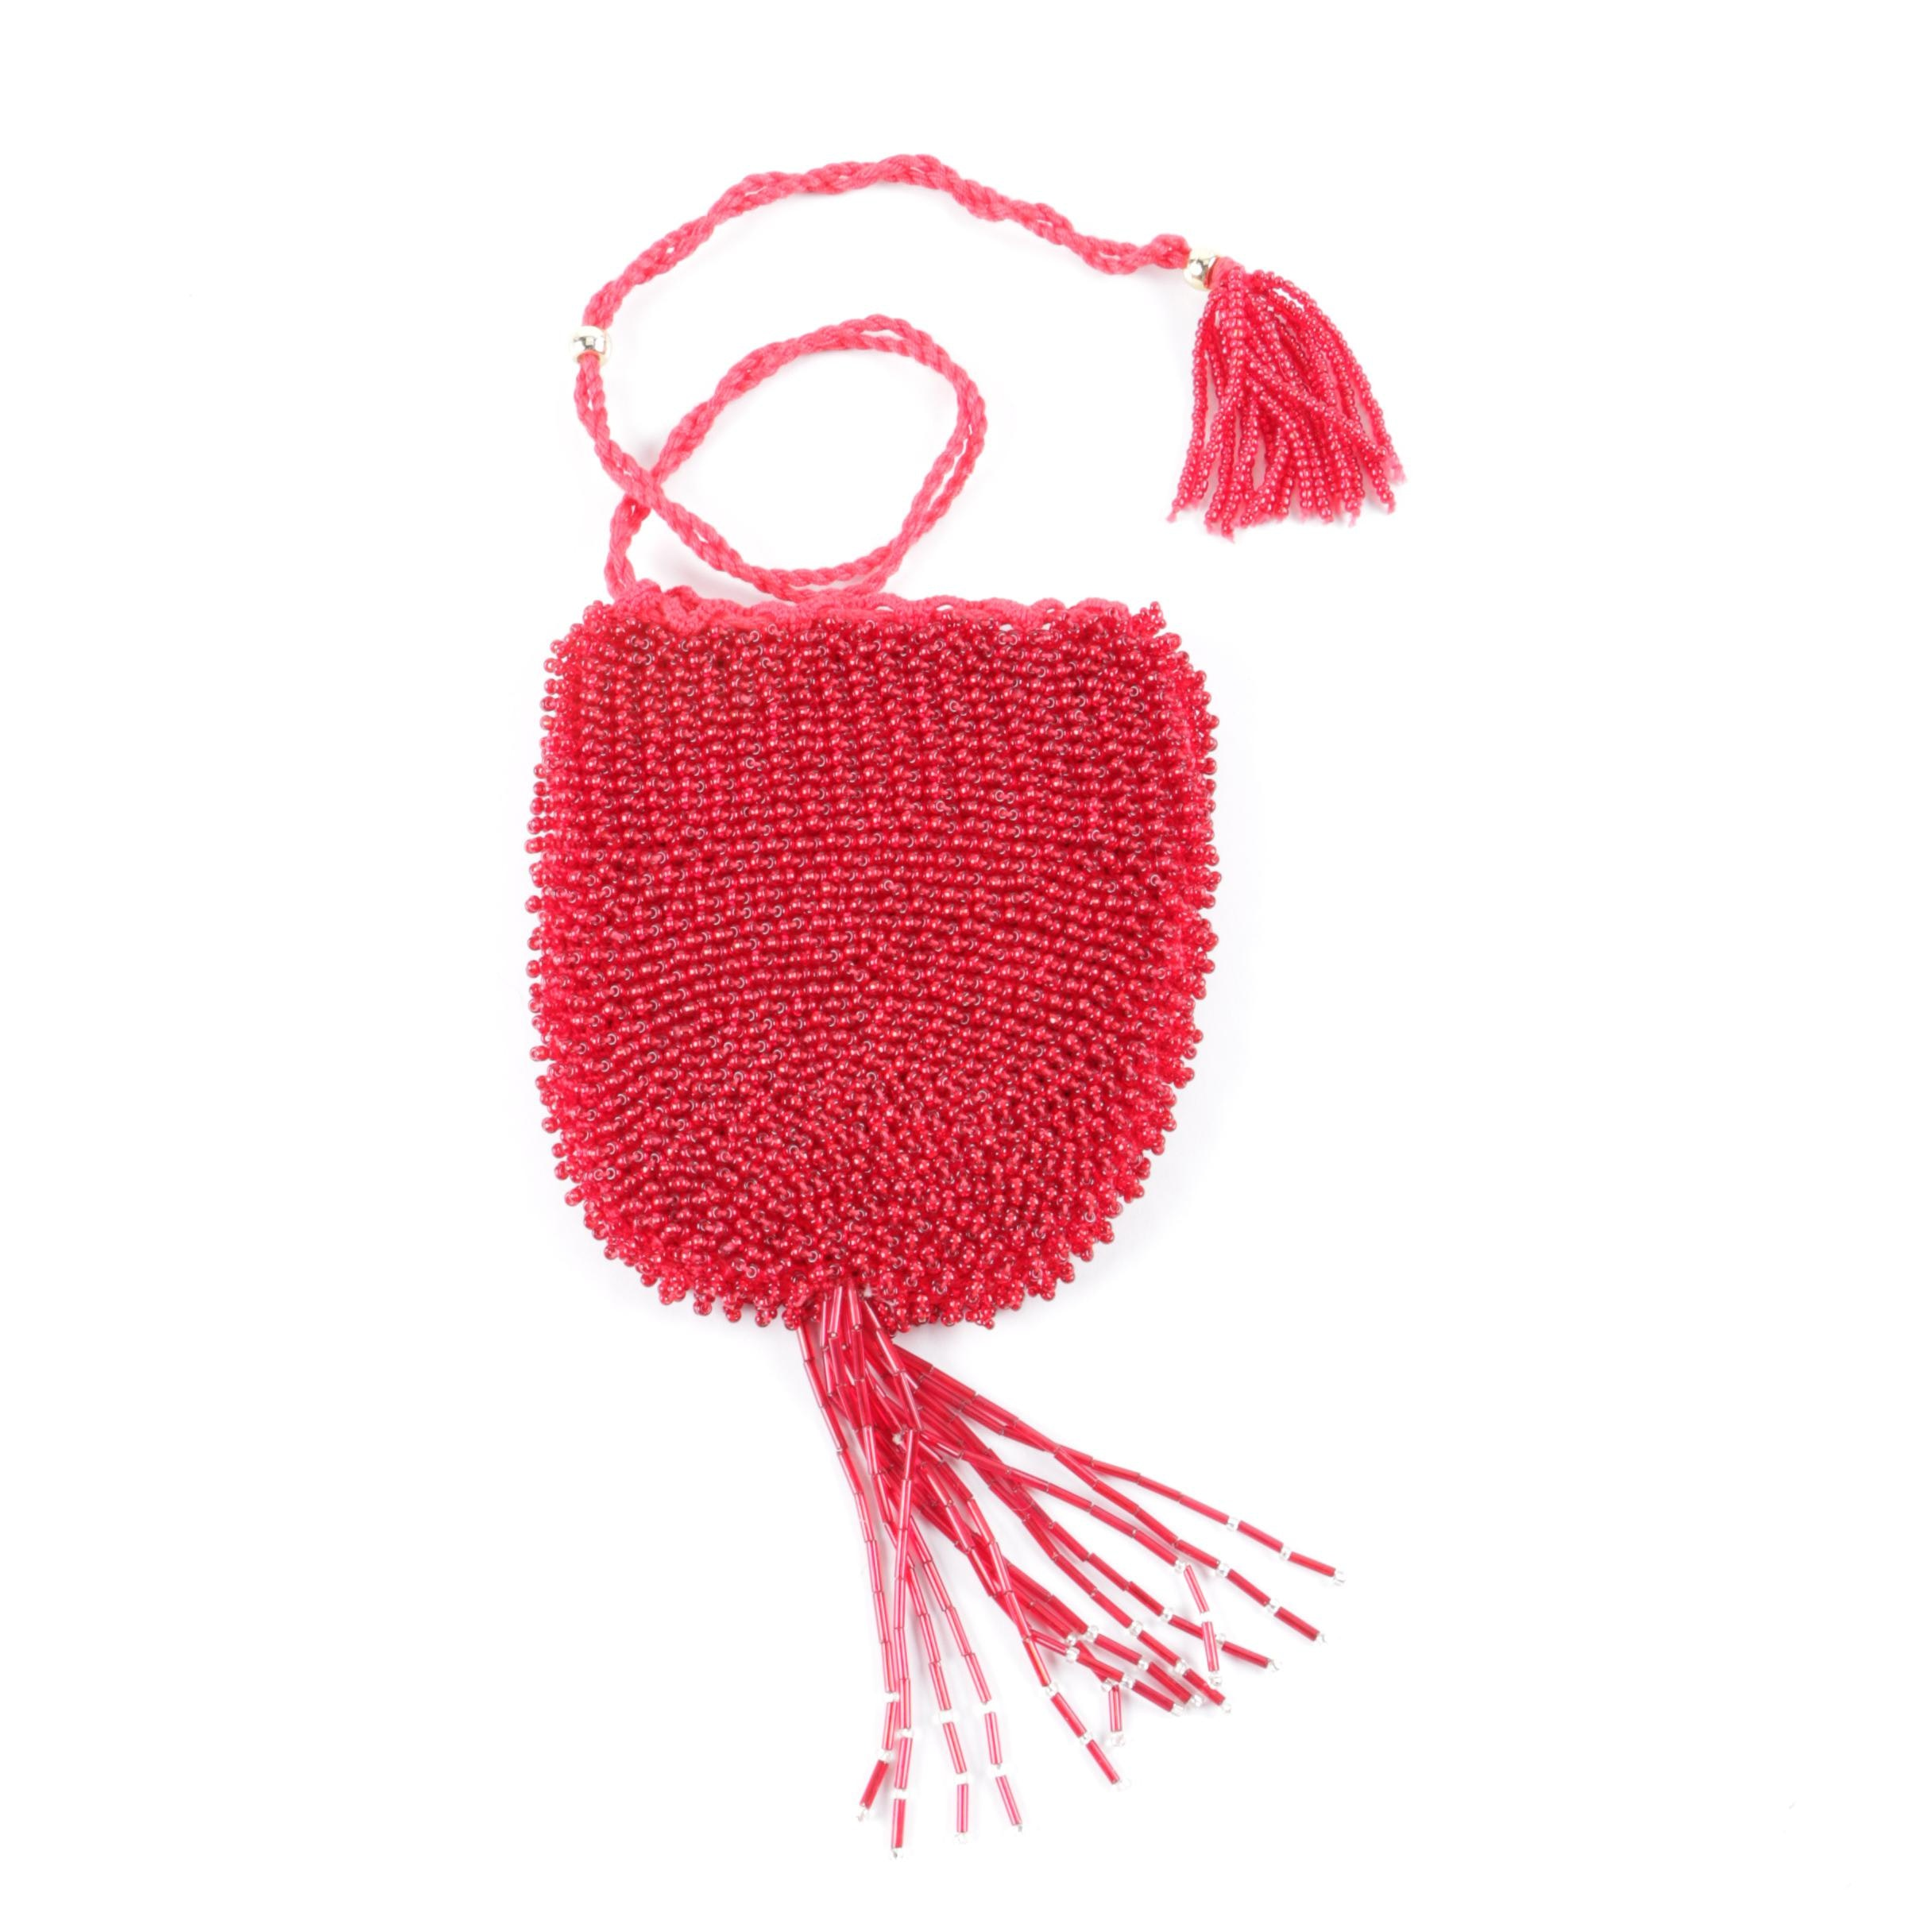 Red Hand-Beaded Crochet Drawstring Bag